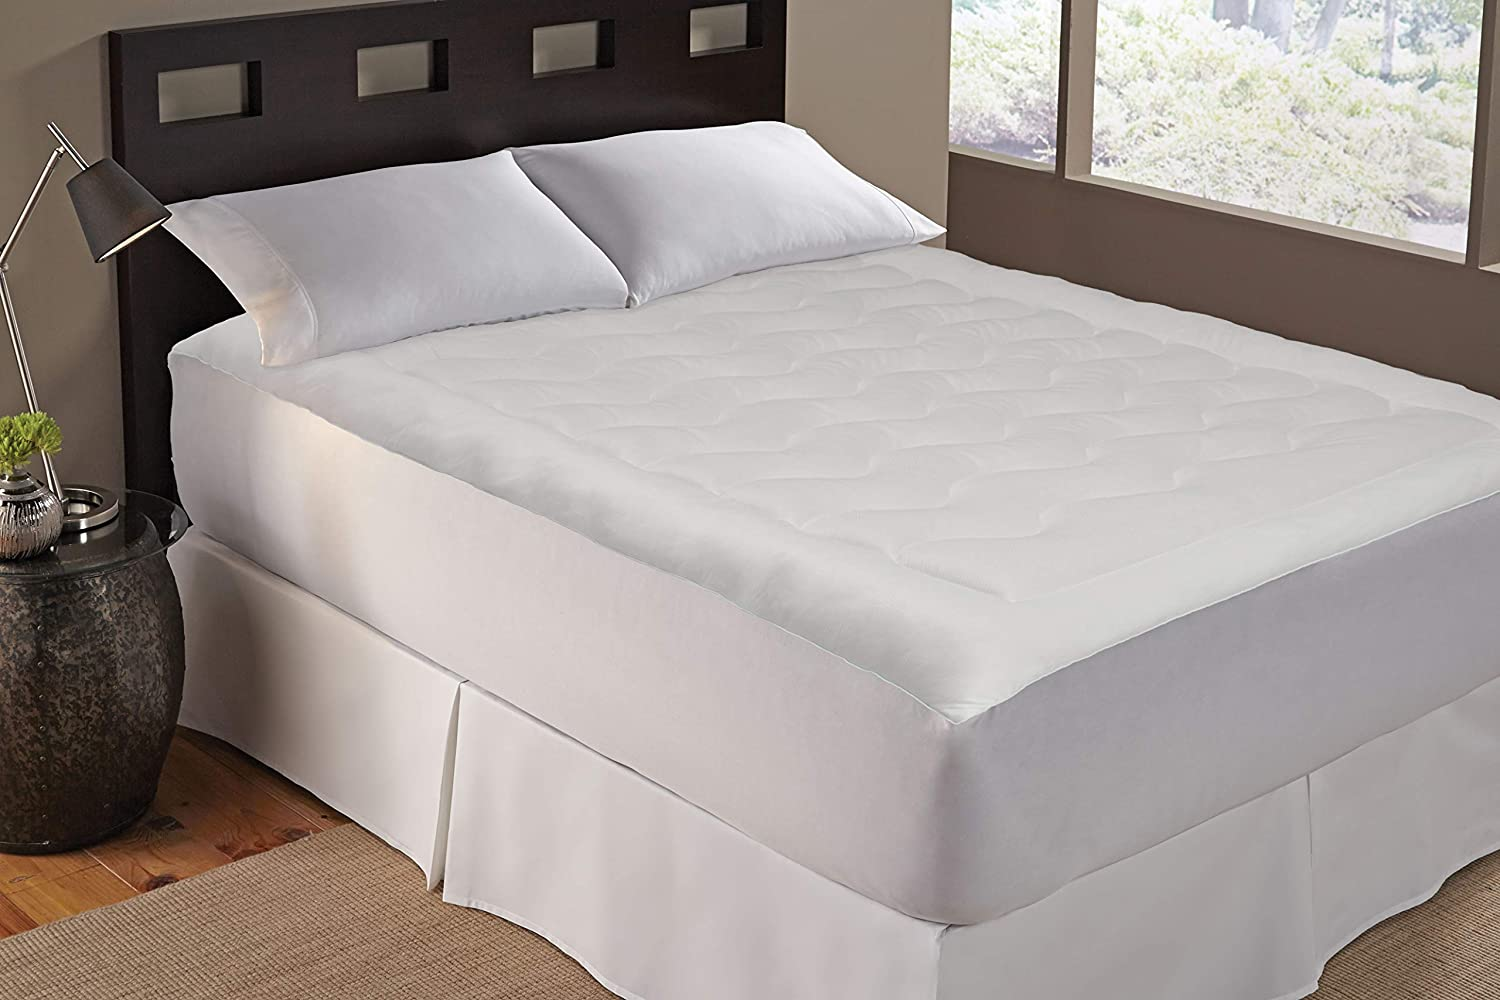 Serta | TempaCool All Season Electric Heating Mattress Pad, Hypoallergenic & Stain Resistant, Queen, White